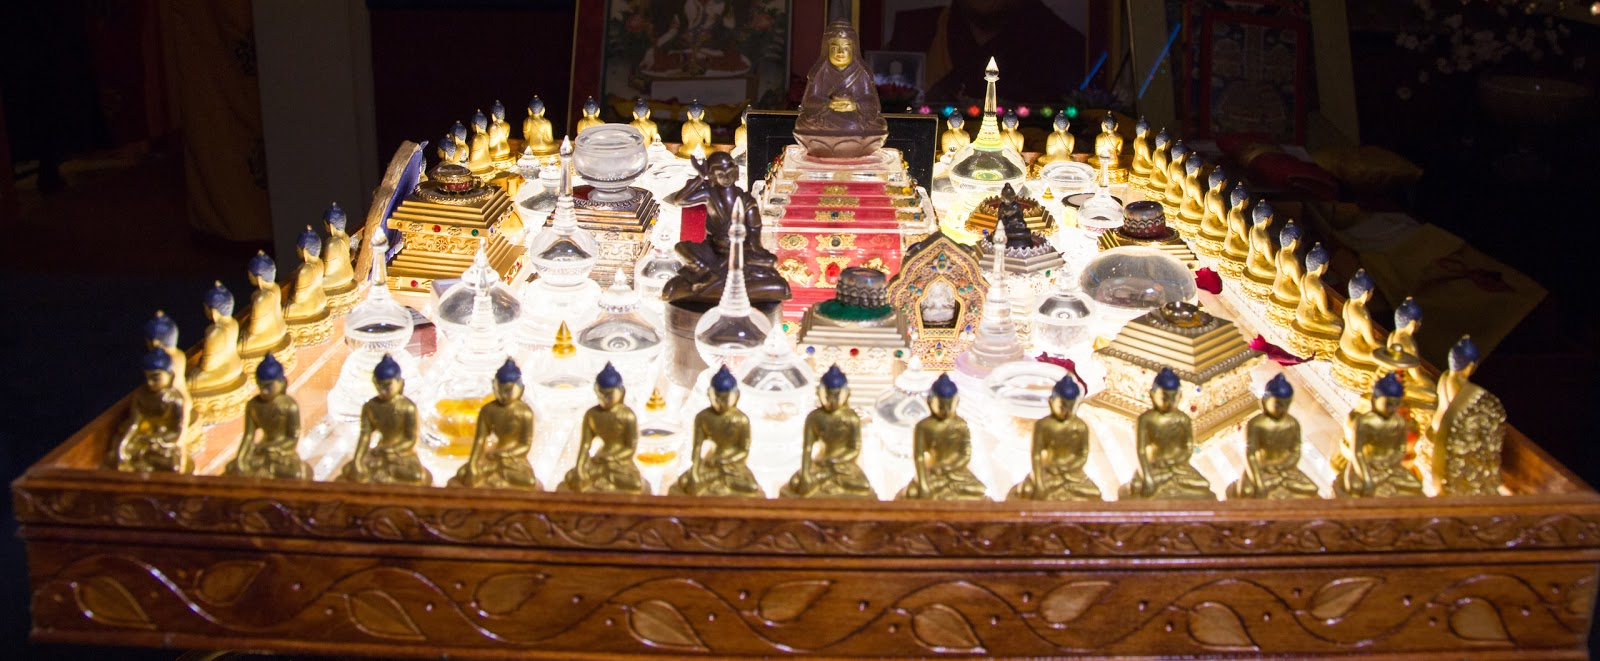 Relics Altar. Photo by Ven. Thubten Kunsang.